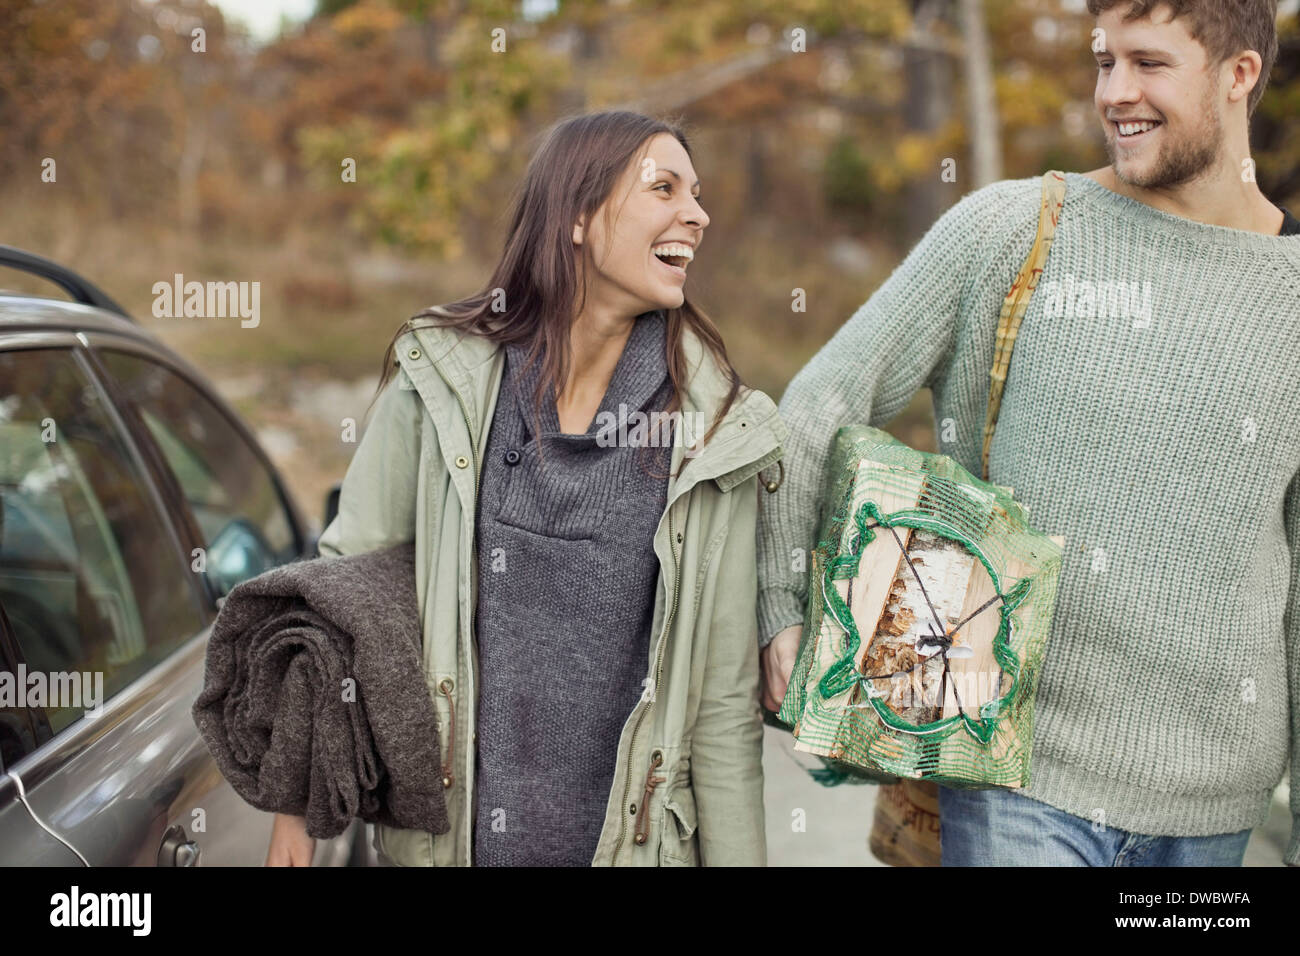 Couple carrying camping equipment by car - Stock Image